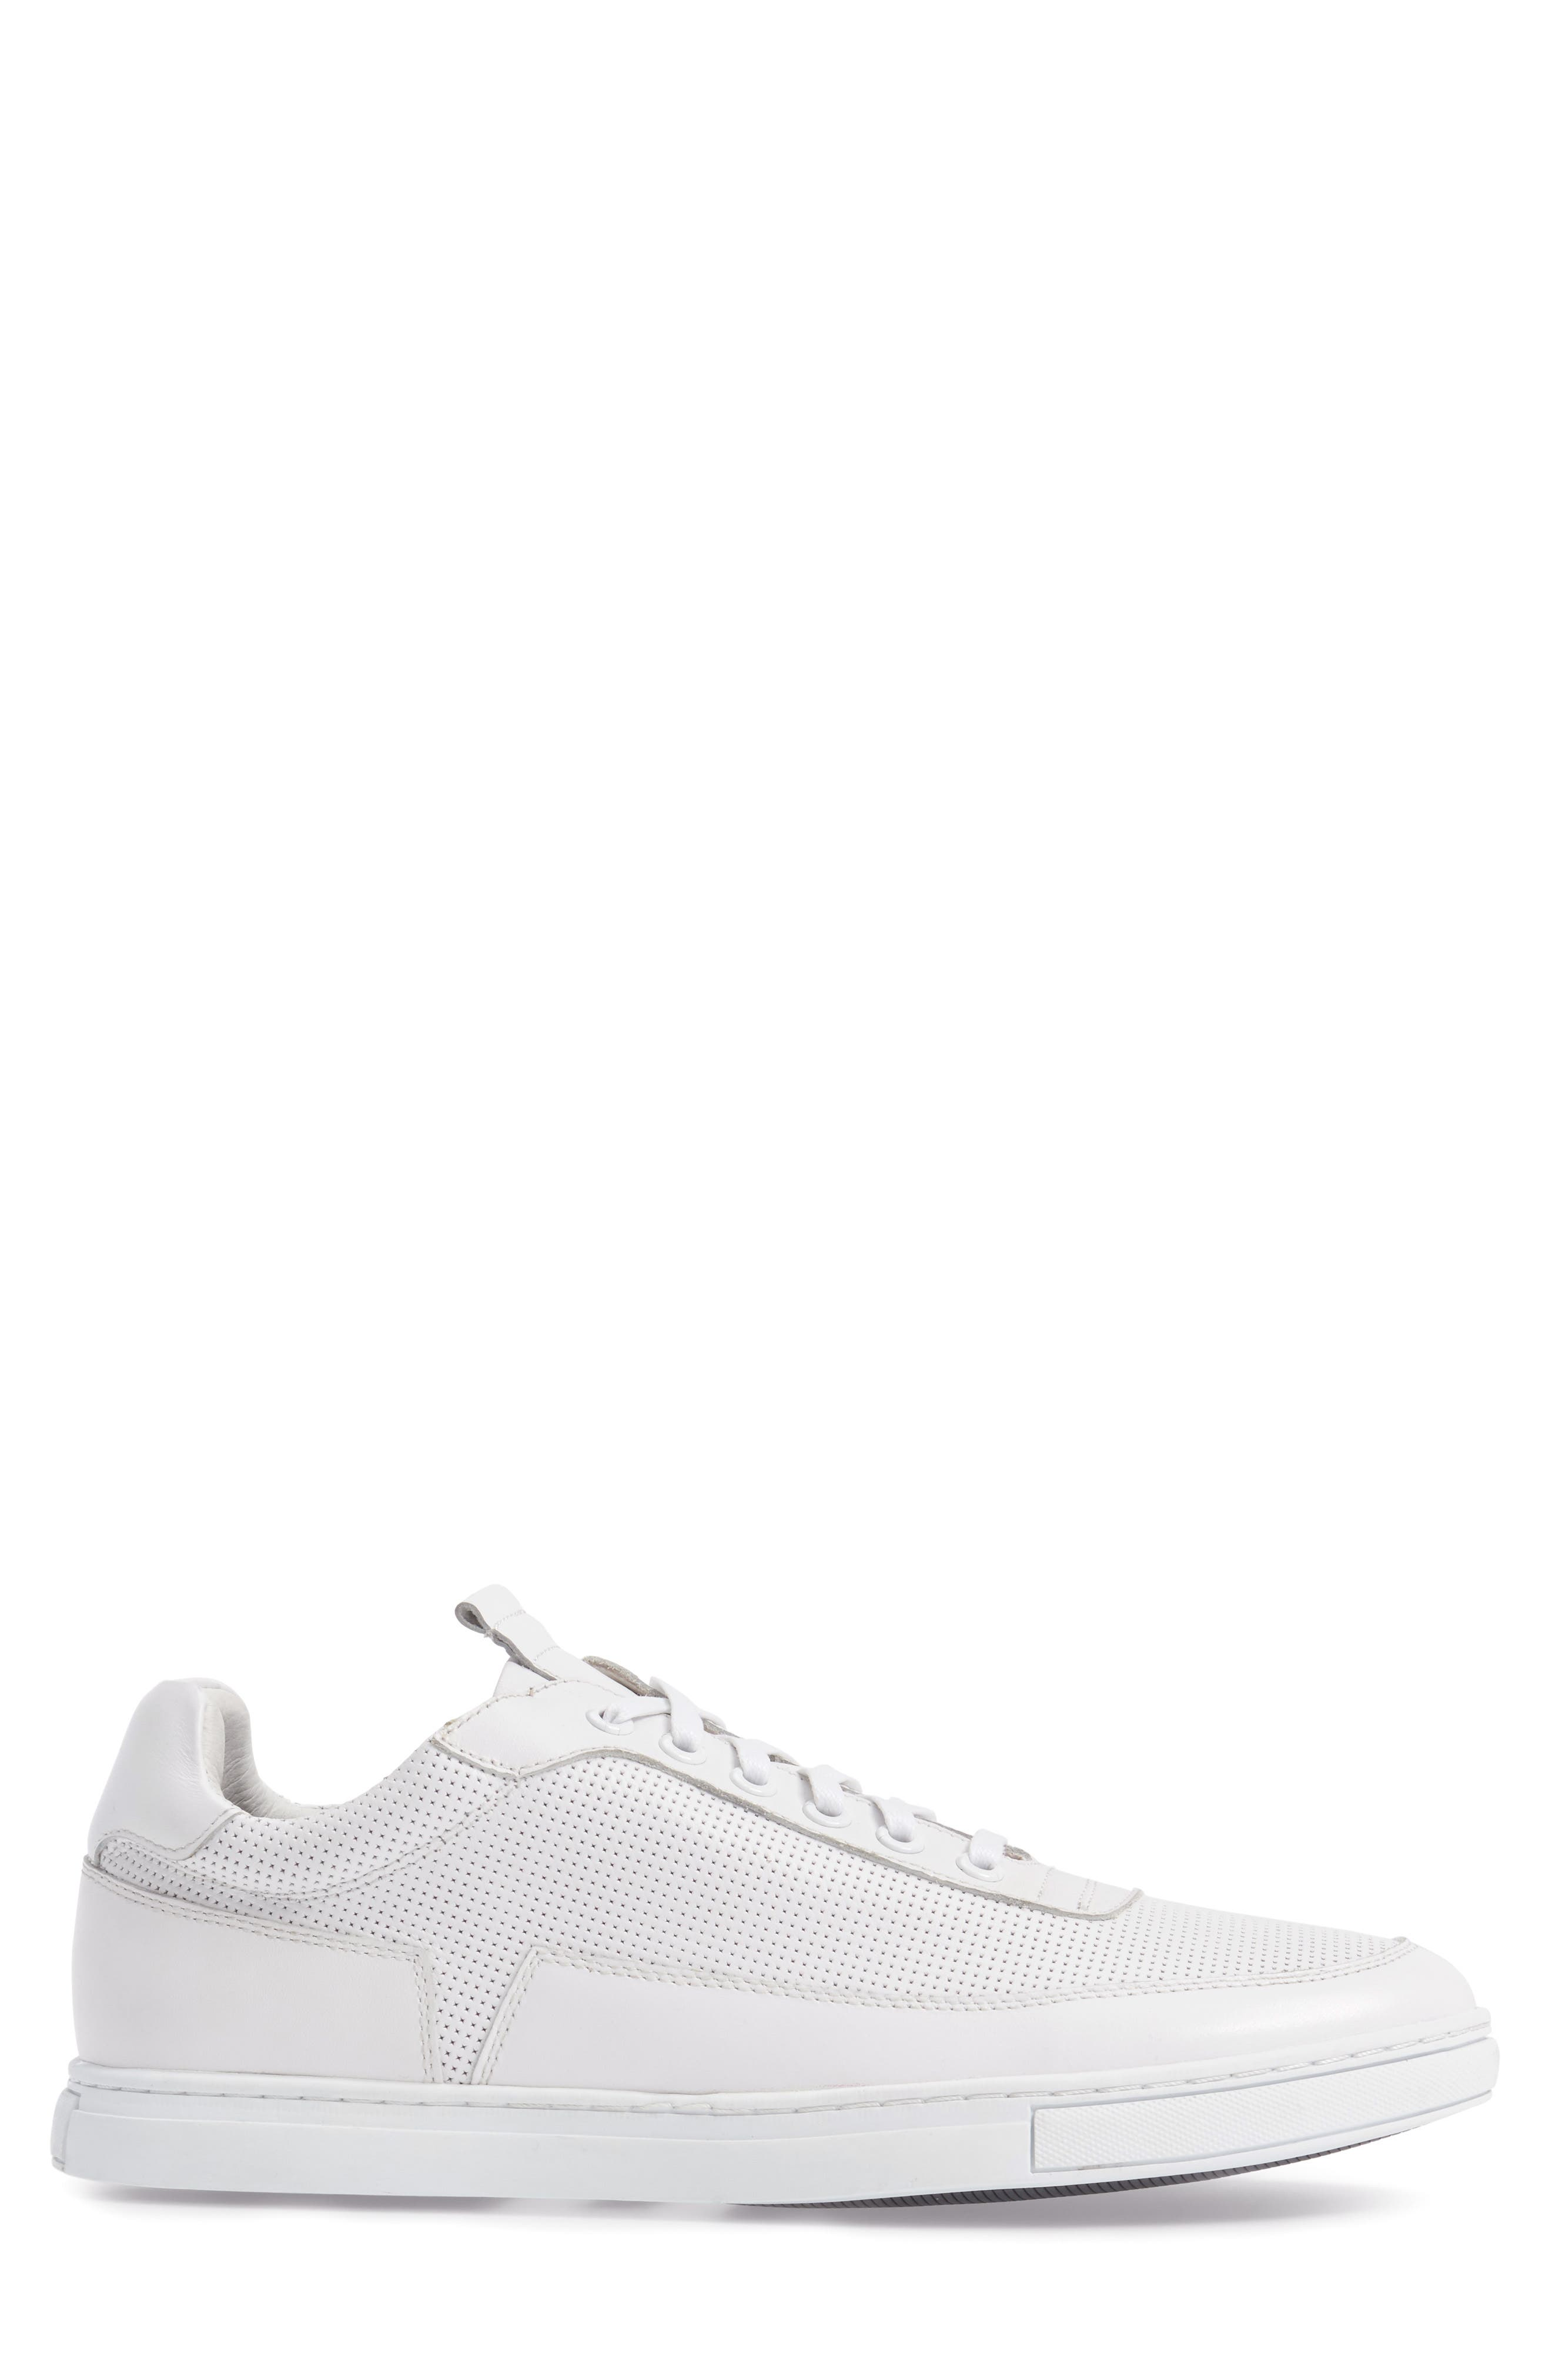 Harmony Sneaker,                             Alternate thumbnail 3, color,                             WHITE LEATHER